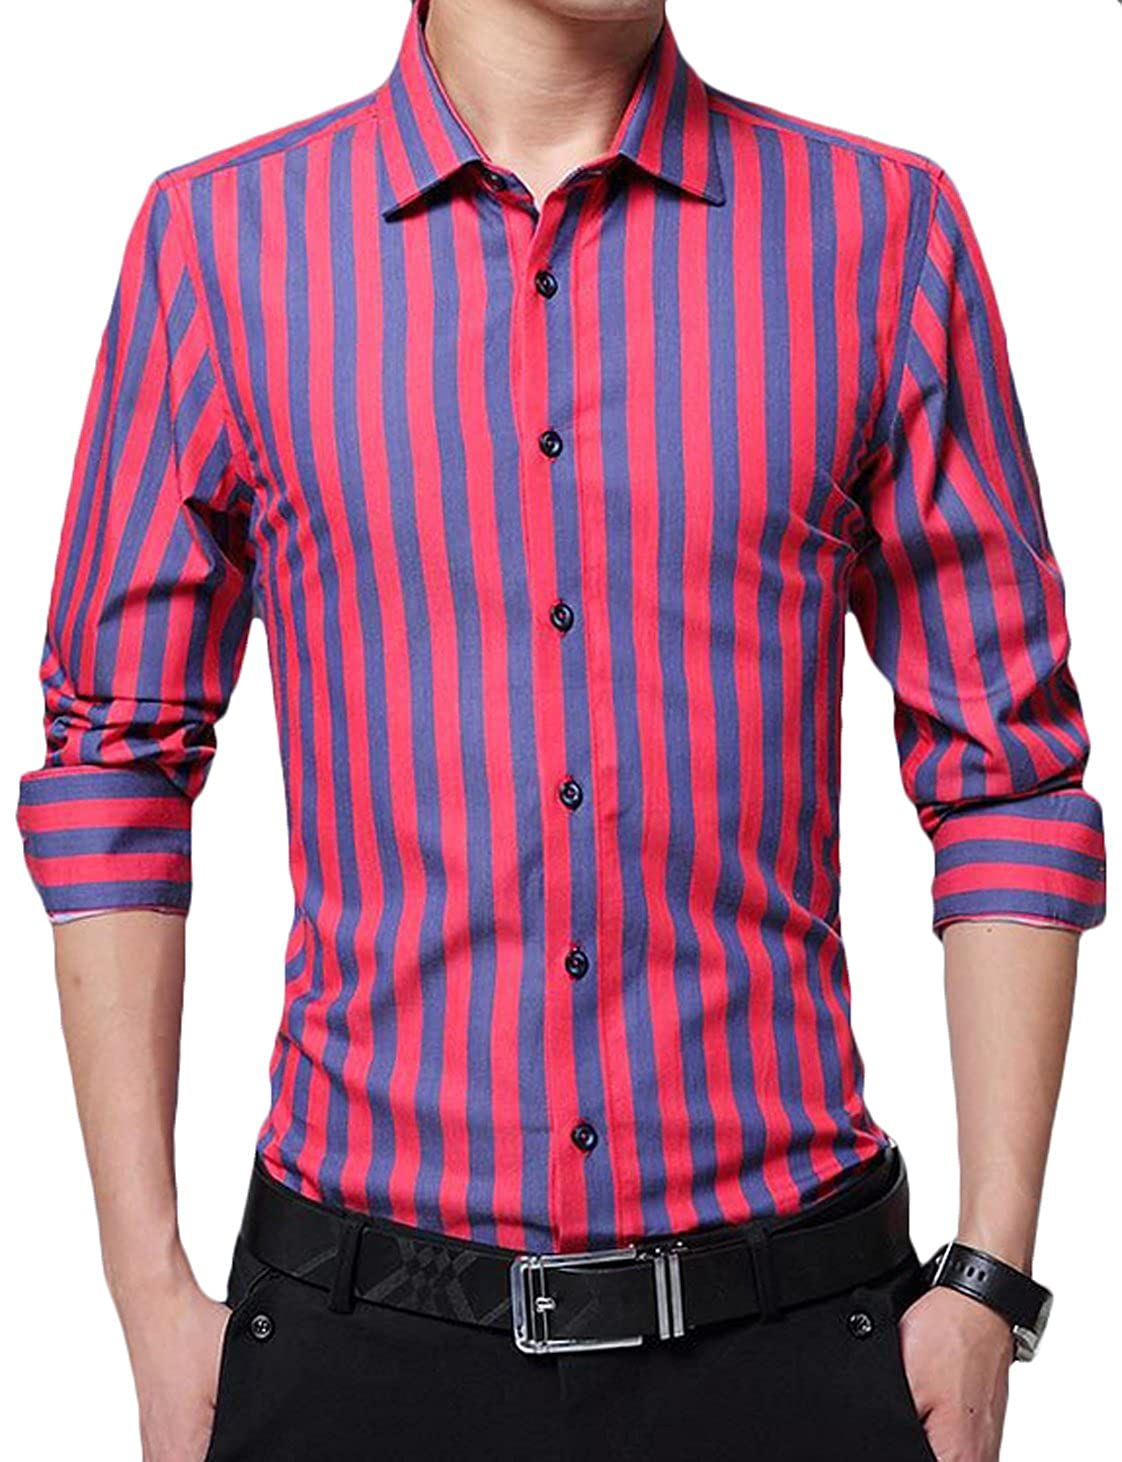 Youhan Mens Long Sleeve Slim Fit Striped Shirt Business Dress Shirt